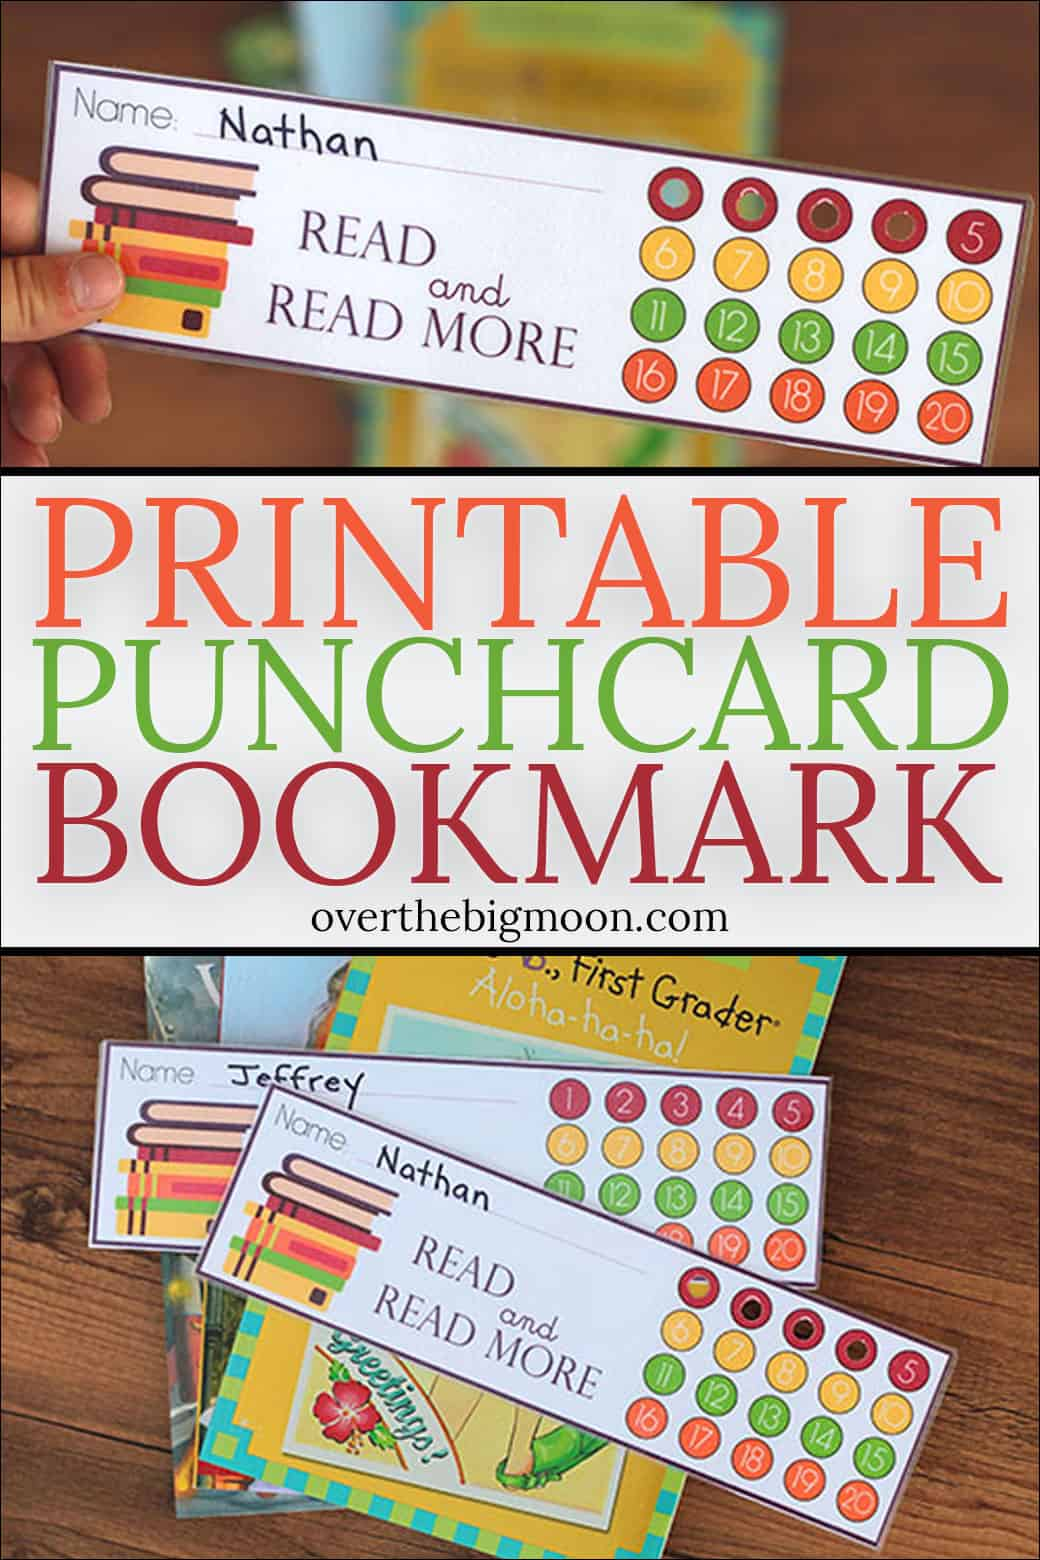 These Printable Punchcard Bookmark are the perfect way to help your kids track their reading and motivate them to reach their reading goals! From overthebigmoon.com!